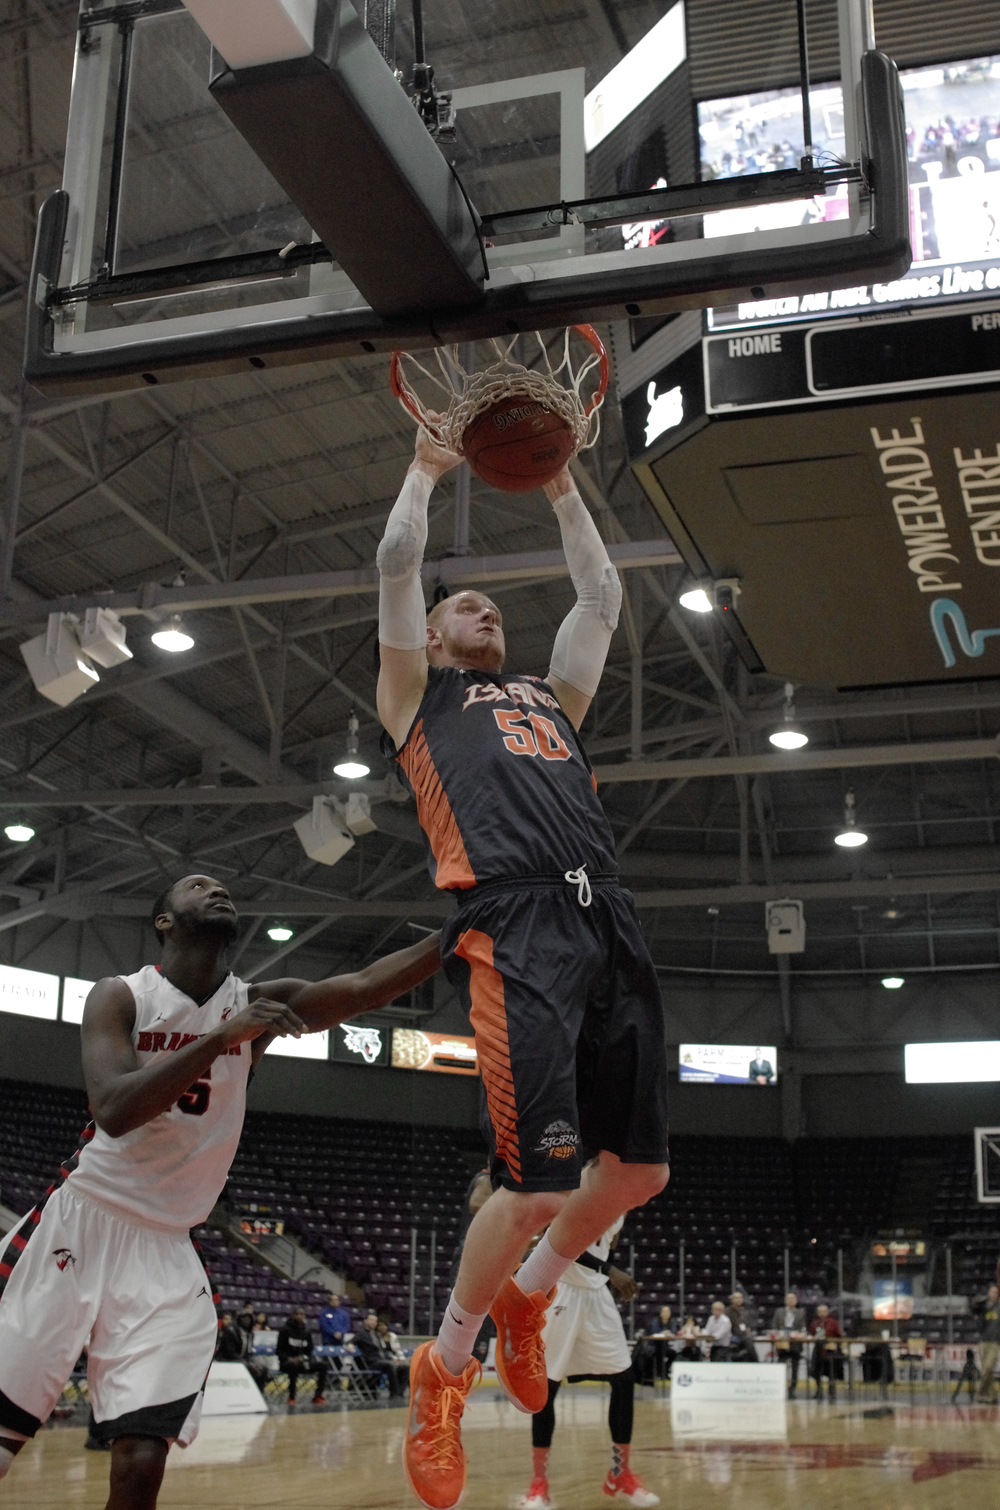 Nick Evans of the Charlottetown Island Storm completes a slam dunk in a game against the Brampton A's in the Powerade Centre in Brampton, Ontario, on January 29, 2015.  As Published in Snapd Brampton, March 2015.